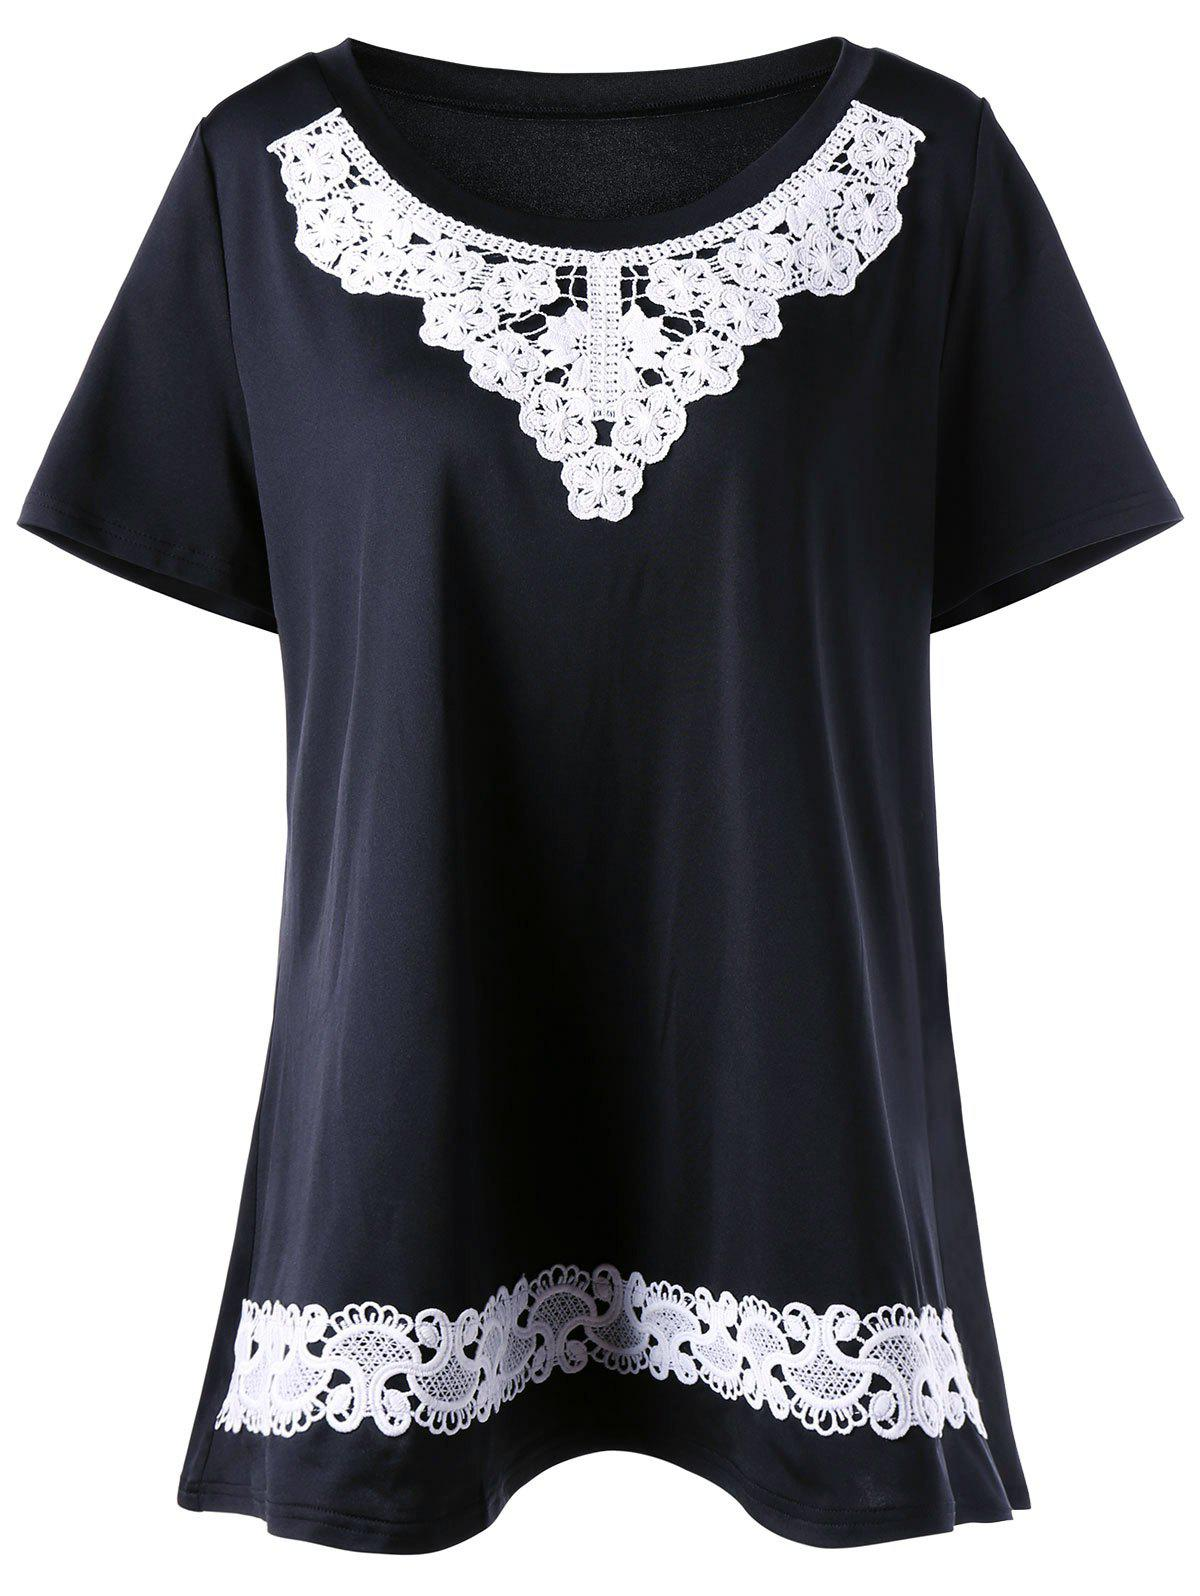 Lace Insert Plus Size Tunic T-Shirt - BLACK 3XL